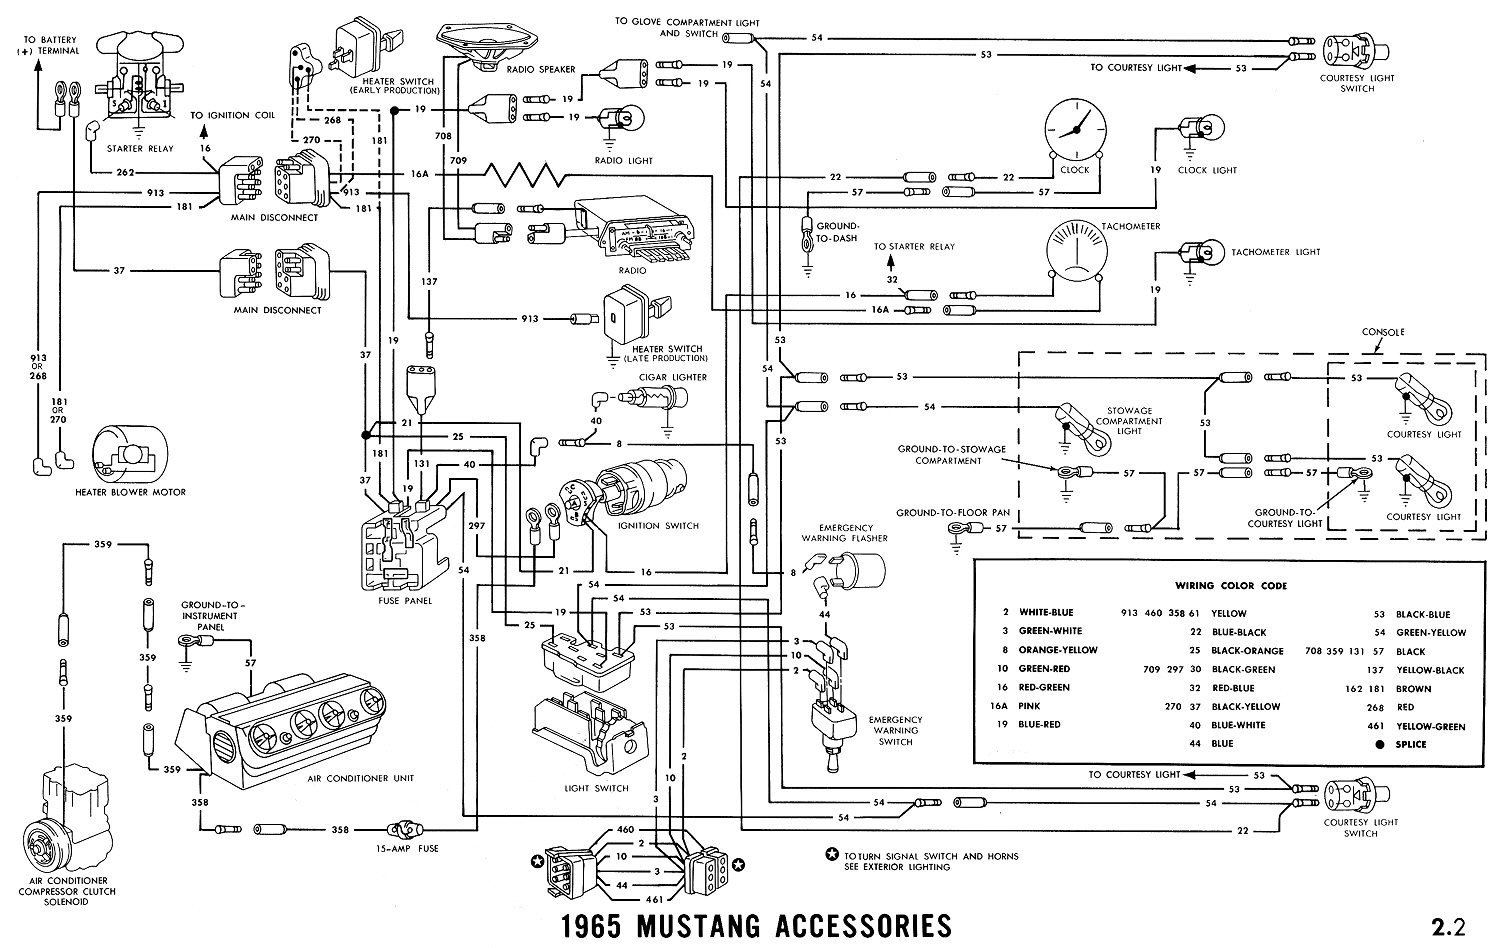 1965i 1965 mustang wiring diagrams average joe restoration 1970 mustang wiring diagram at alyssarenee.co